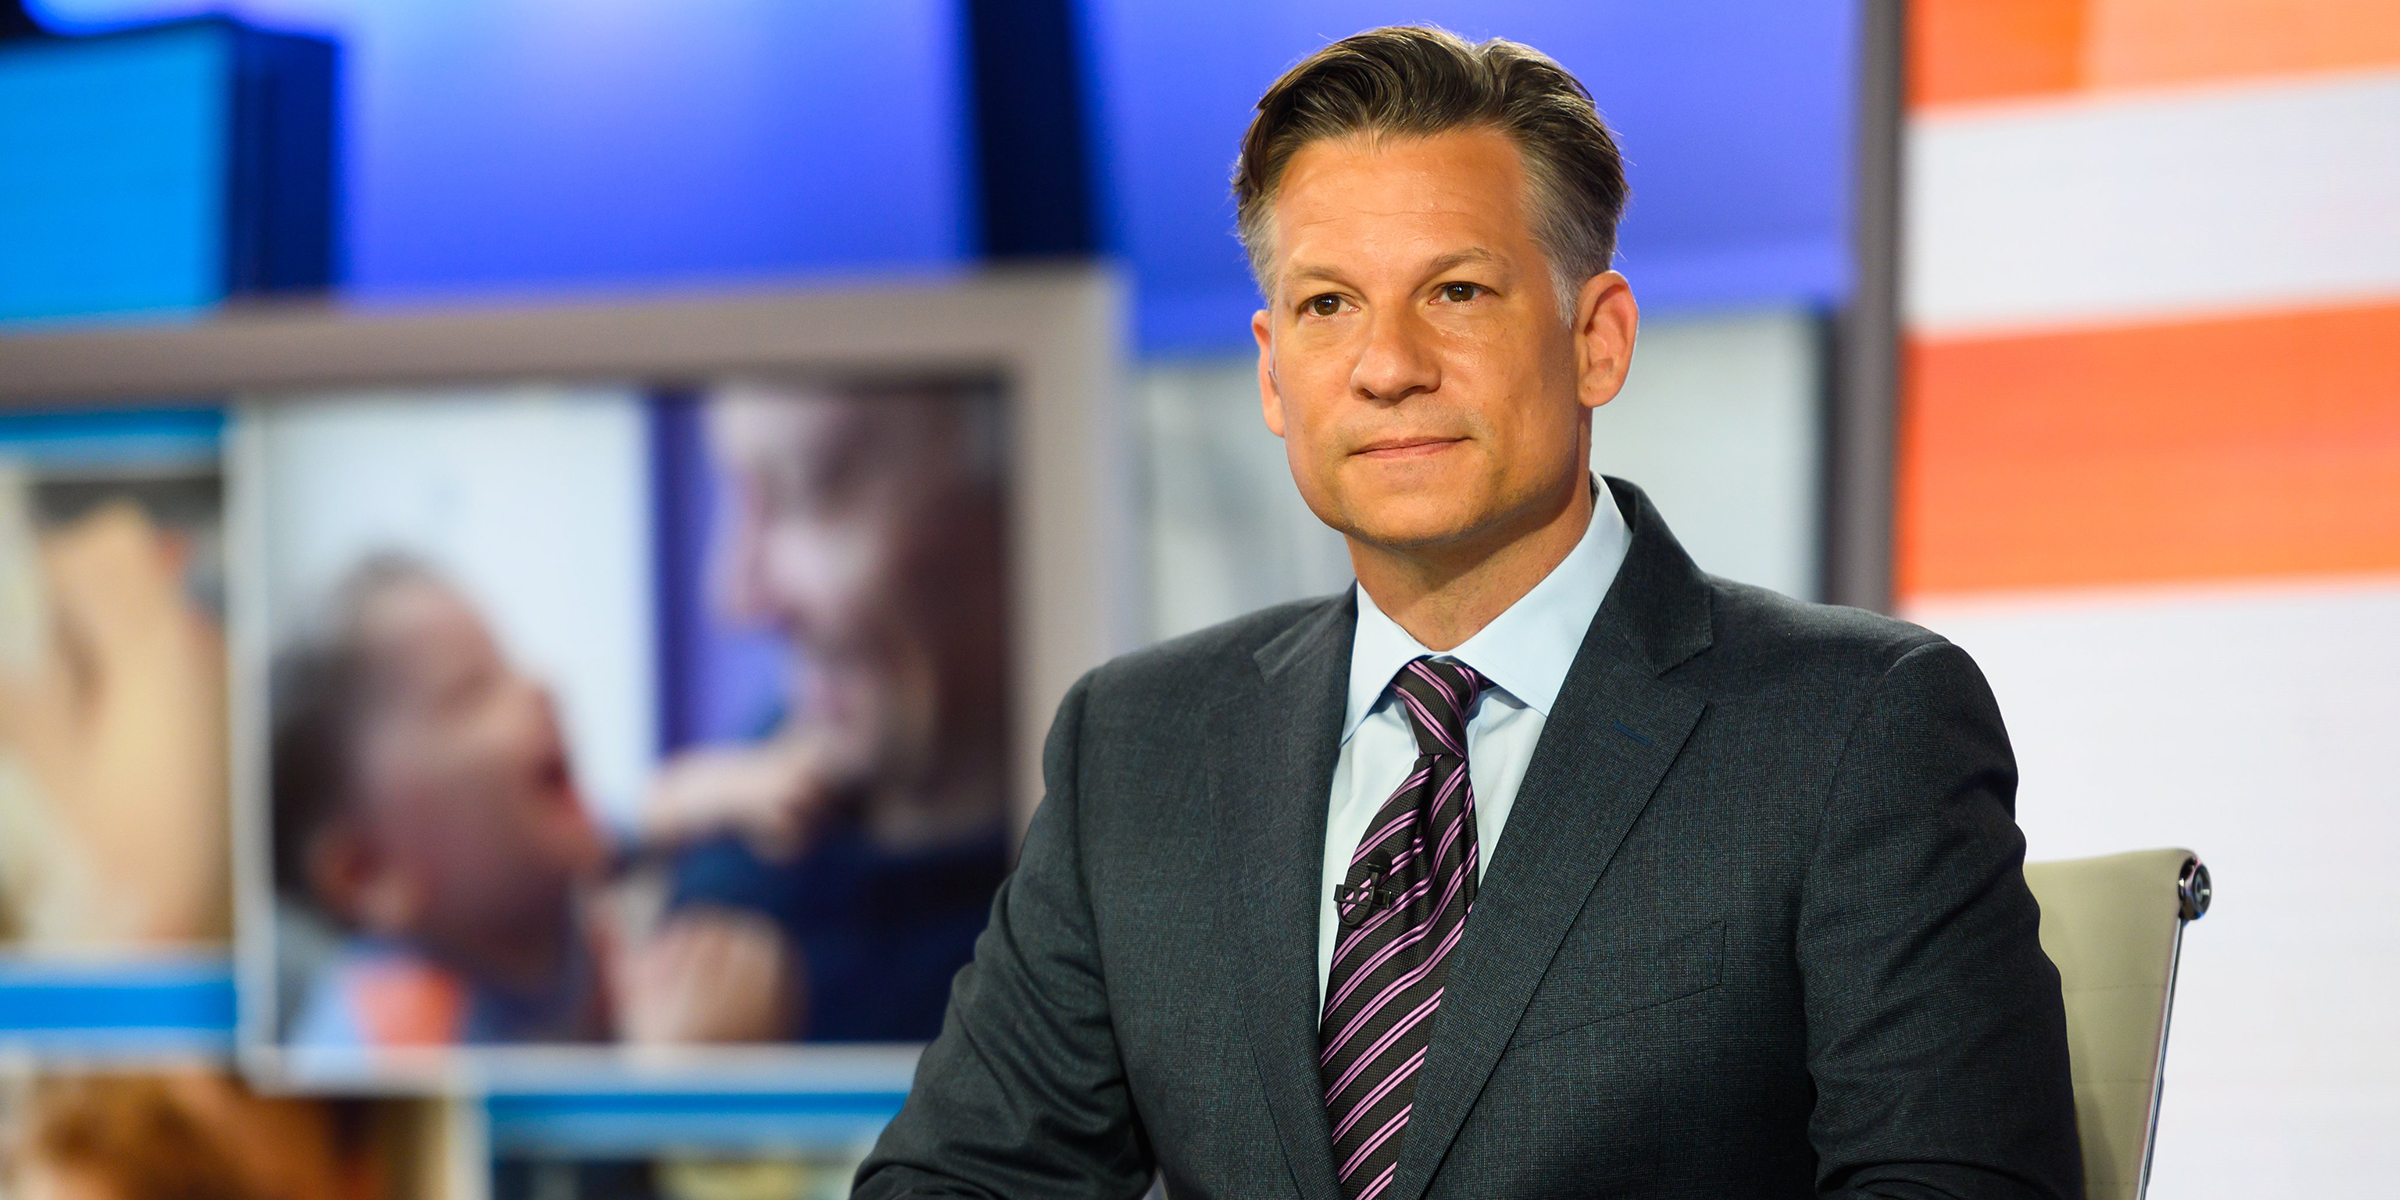 Richard Engel shares difficulty of watching baby son 'pass' by older brother with Rett syndrome